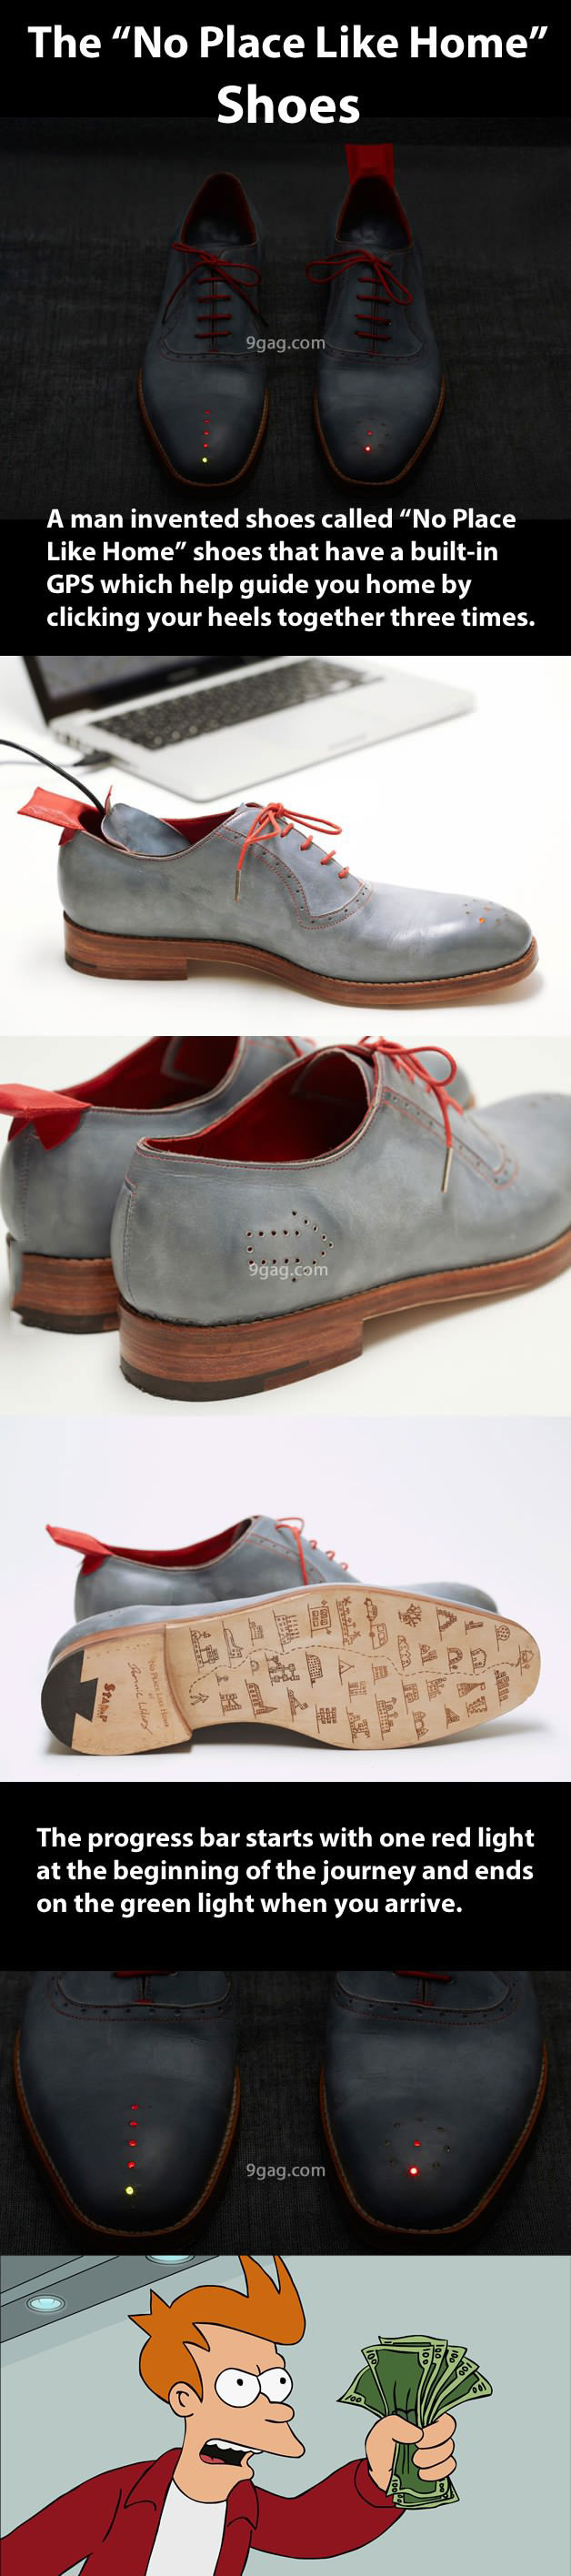 shoes, idea, clever, wizard of oz, gps